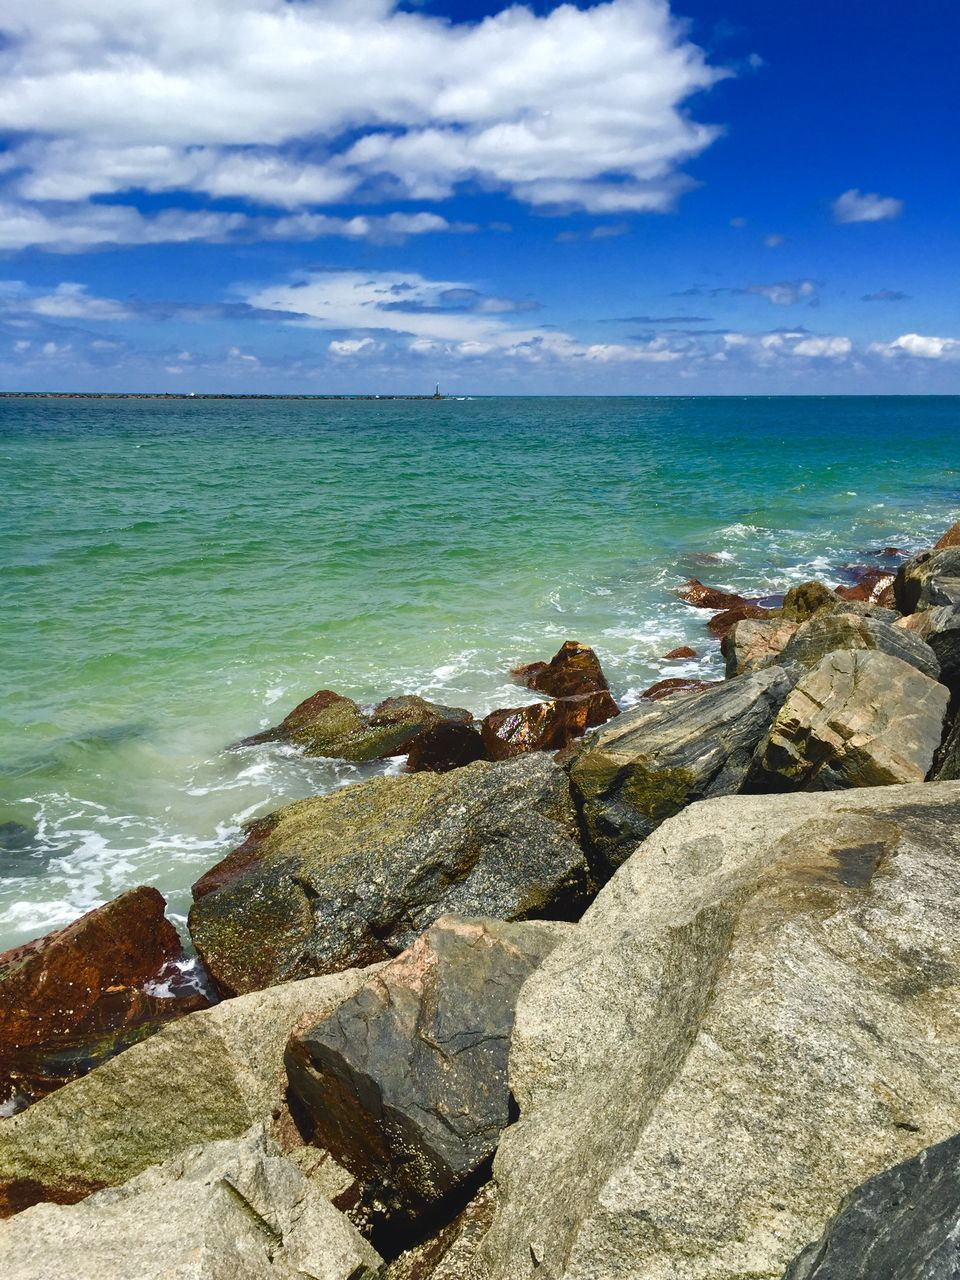 Scenic View Of Rocks On Shore By Sea Against Sky